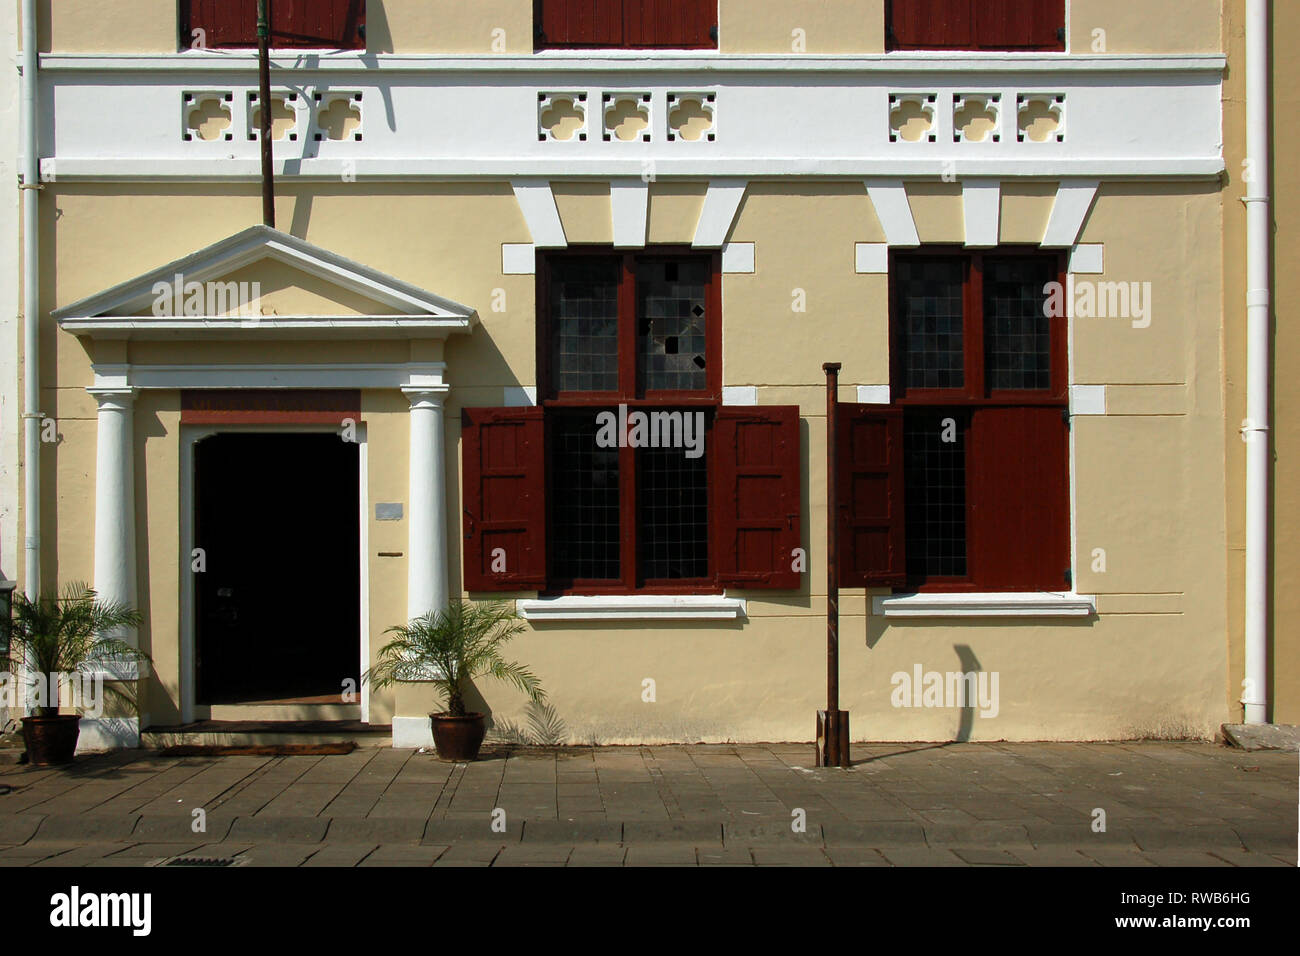 Wayang Museum in Kota Tua District in Jakarta, Indonesia. Wayang are traditional Indonesian puppets. - Stock Image